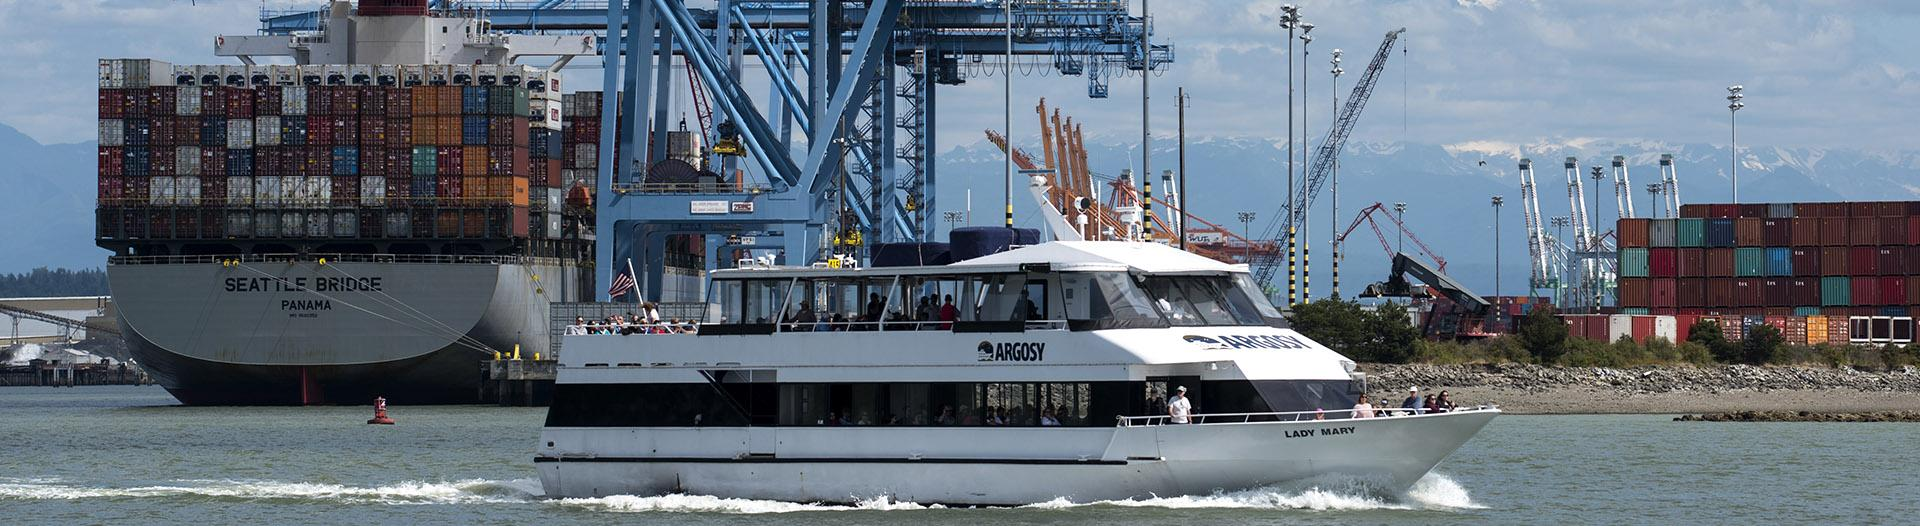 Boat touring the Port of Tacoma